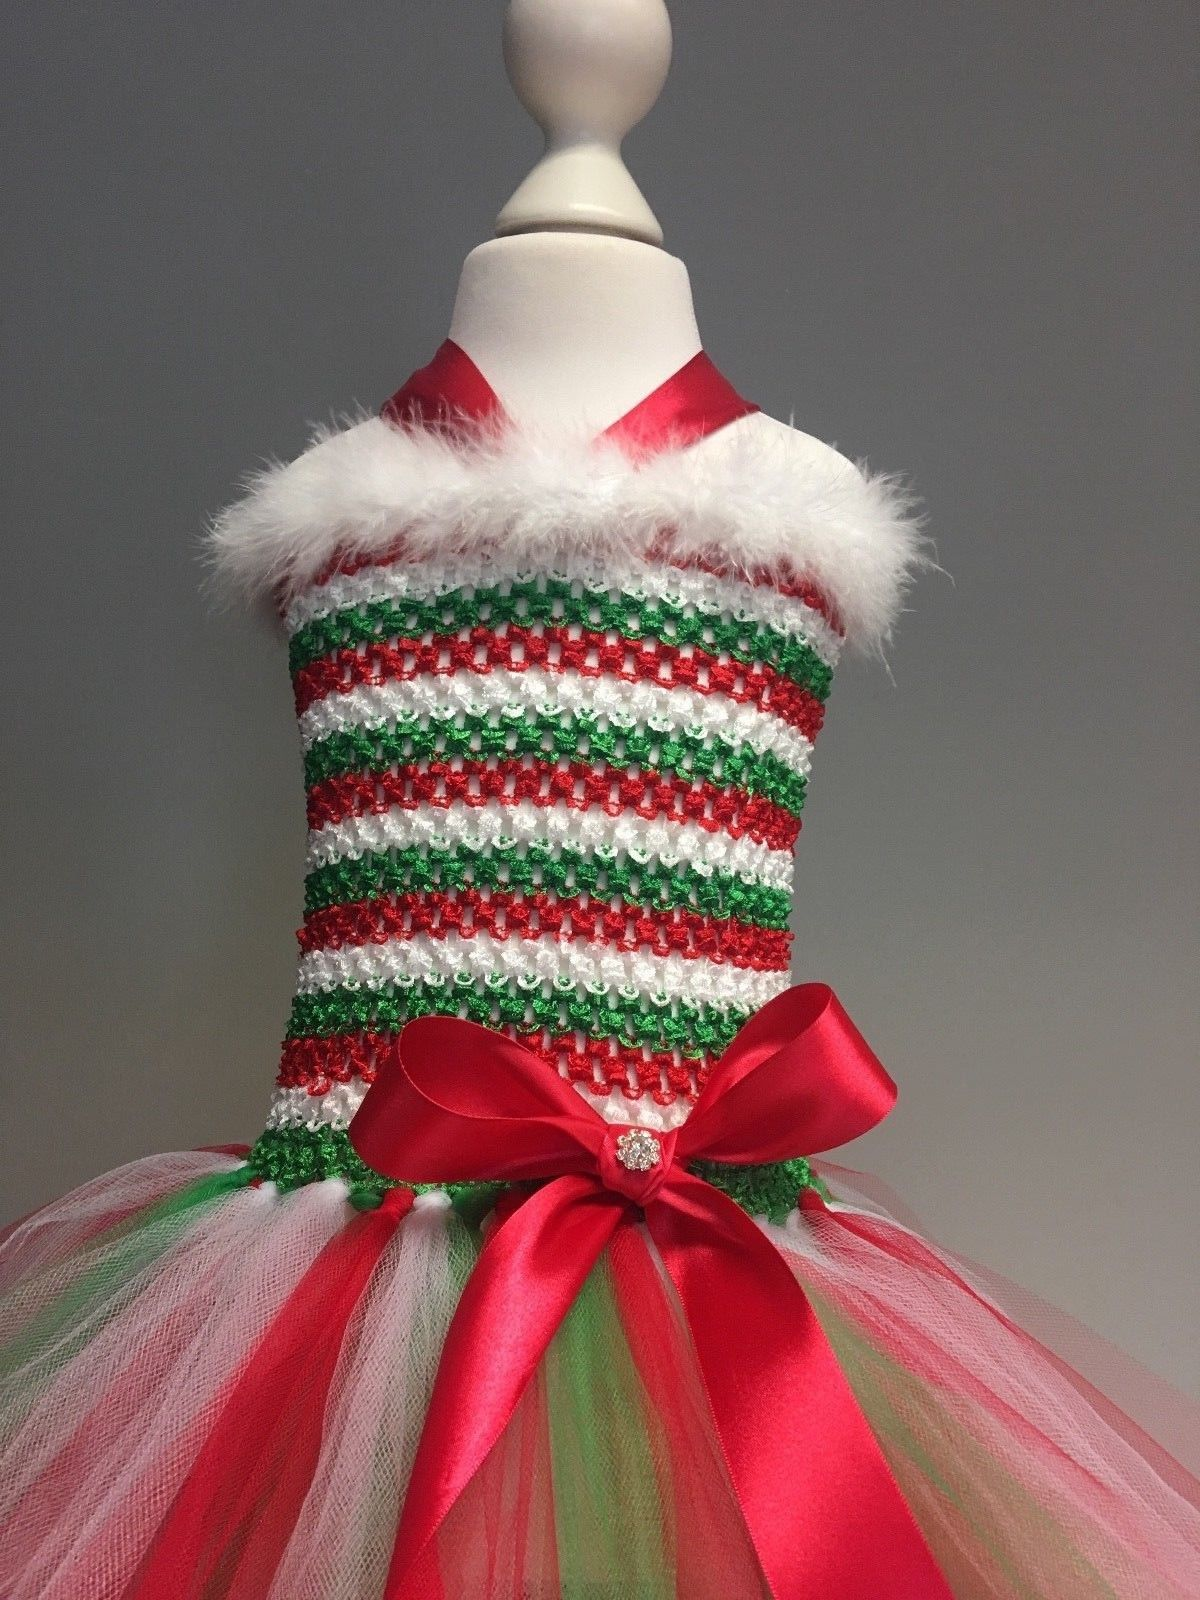 3080d0cc358e Elf tutu tulle dress Christmas outfit girls Christmas dress up red green  white